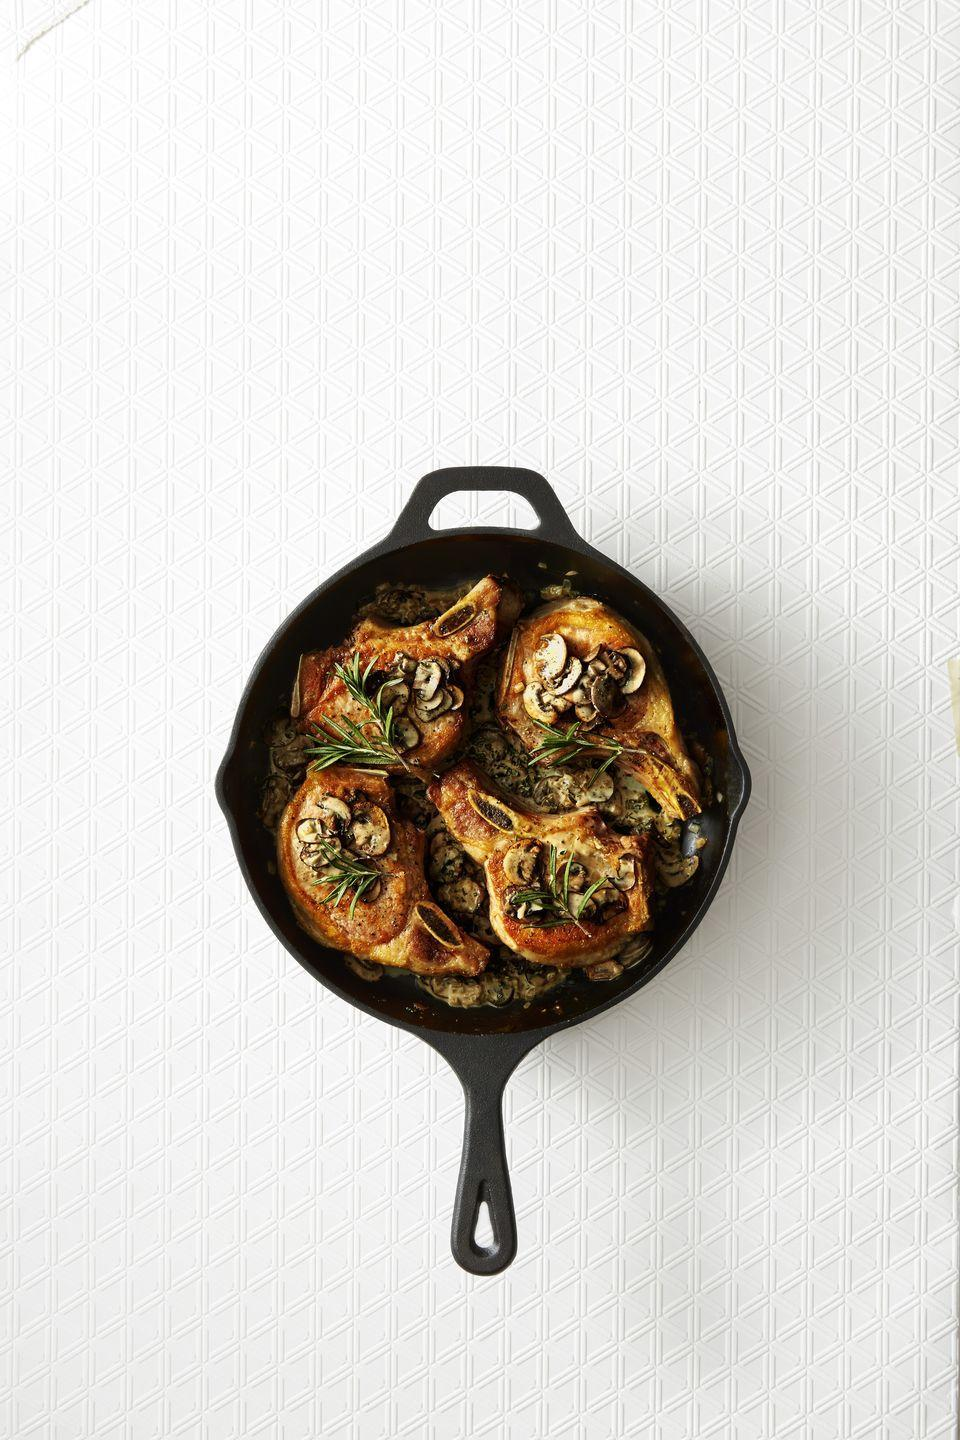 "<p>A few spoonfuls of truffle butter really takes things to the next level.</p><p><a href=""https://www.goodhousekeeping.com/food-products/a42788/pork-chops-rosemary-truffle-sauce-recipe/"" rel=""nofollow noopener"" target=""_blank"" data-ylk=""slk:Get the recipe for Pork Chops with Rosemary Truffle Sauce »"" class=""link rapid-noclick-resp""><em>Get the recipe for Pork Chops with Rosemary Truffle Sauce »</em></a></p>"